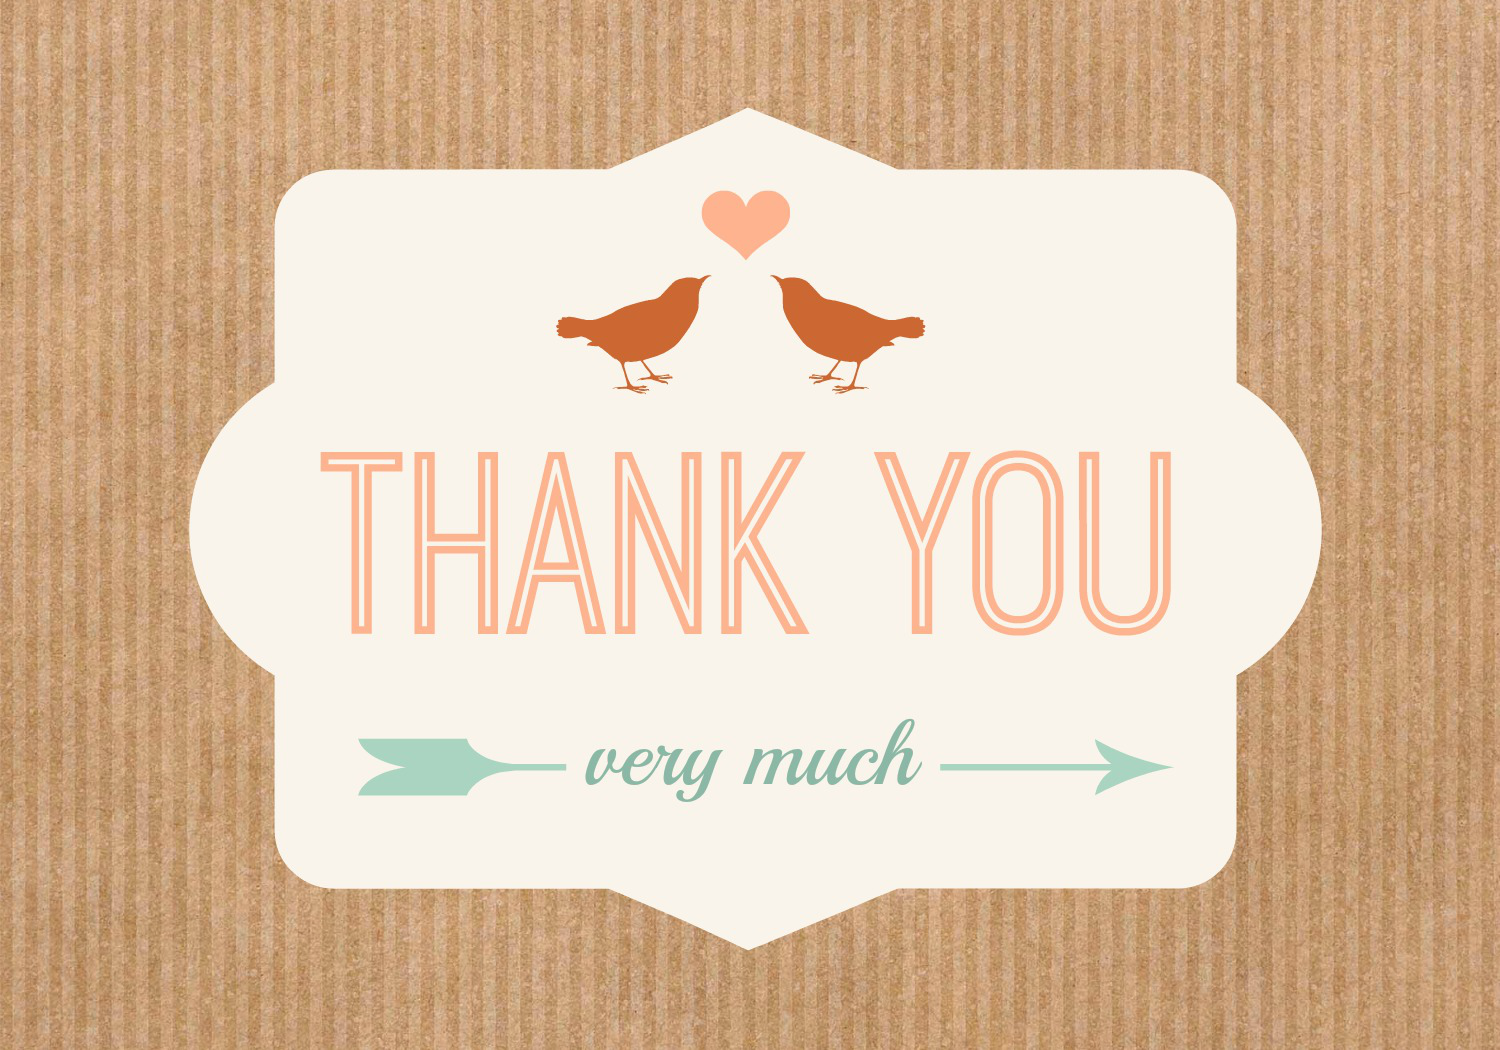 retro-thank-you-card-design